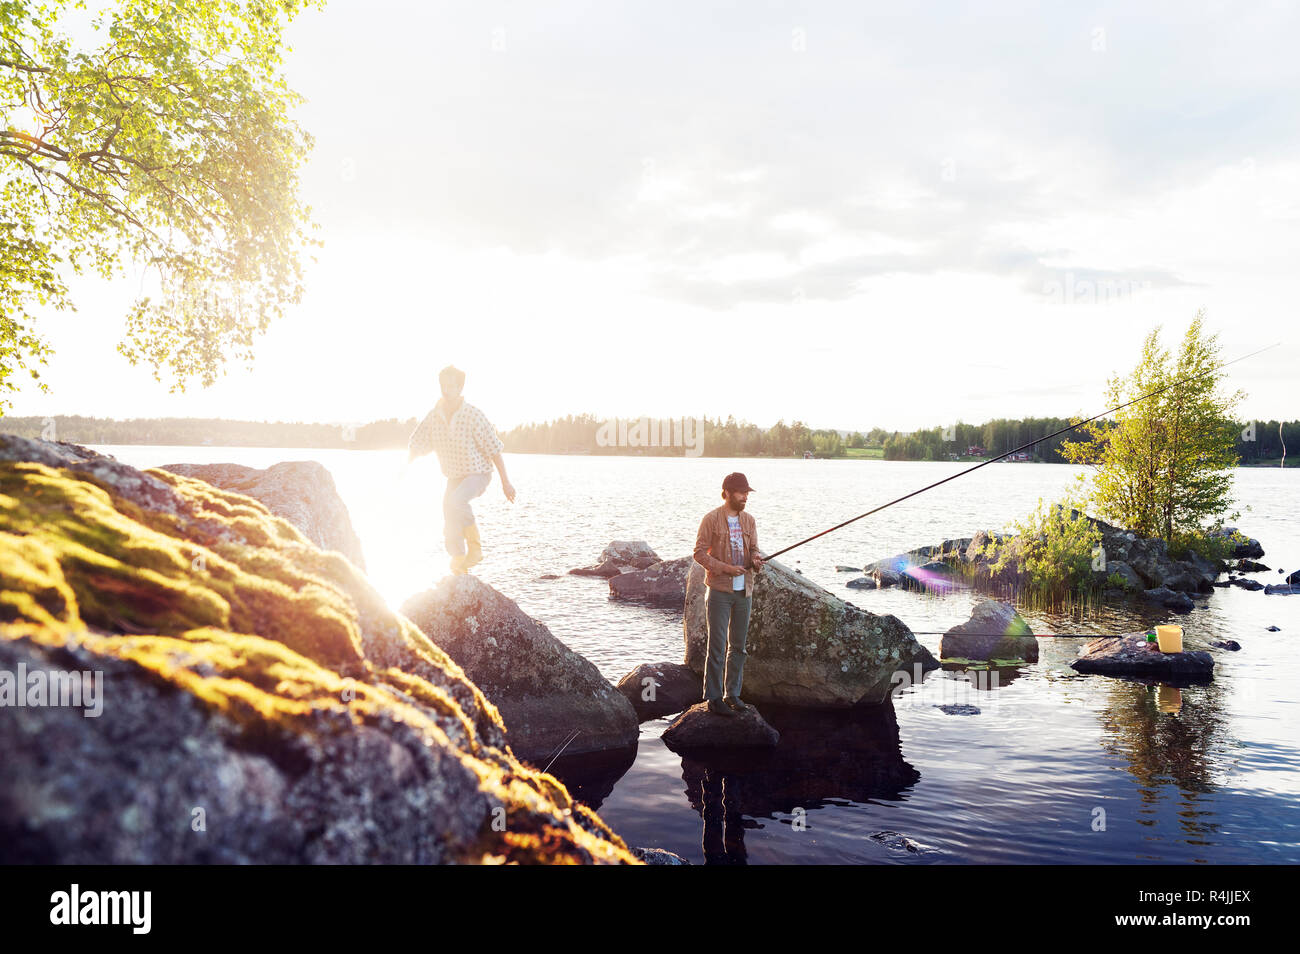 Friends fishing on a lake in Dalarna, Sweden - Stock Image